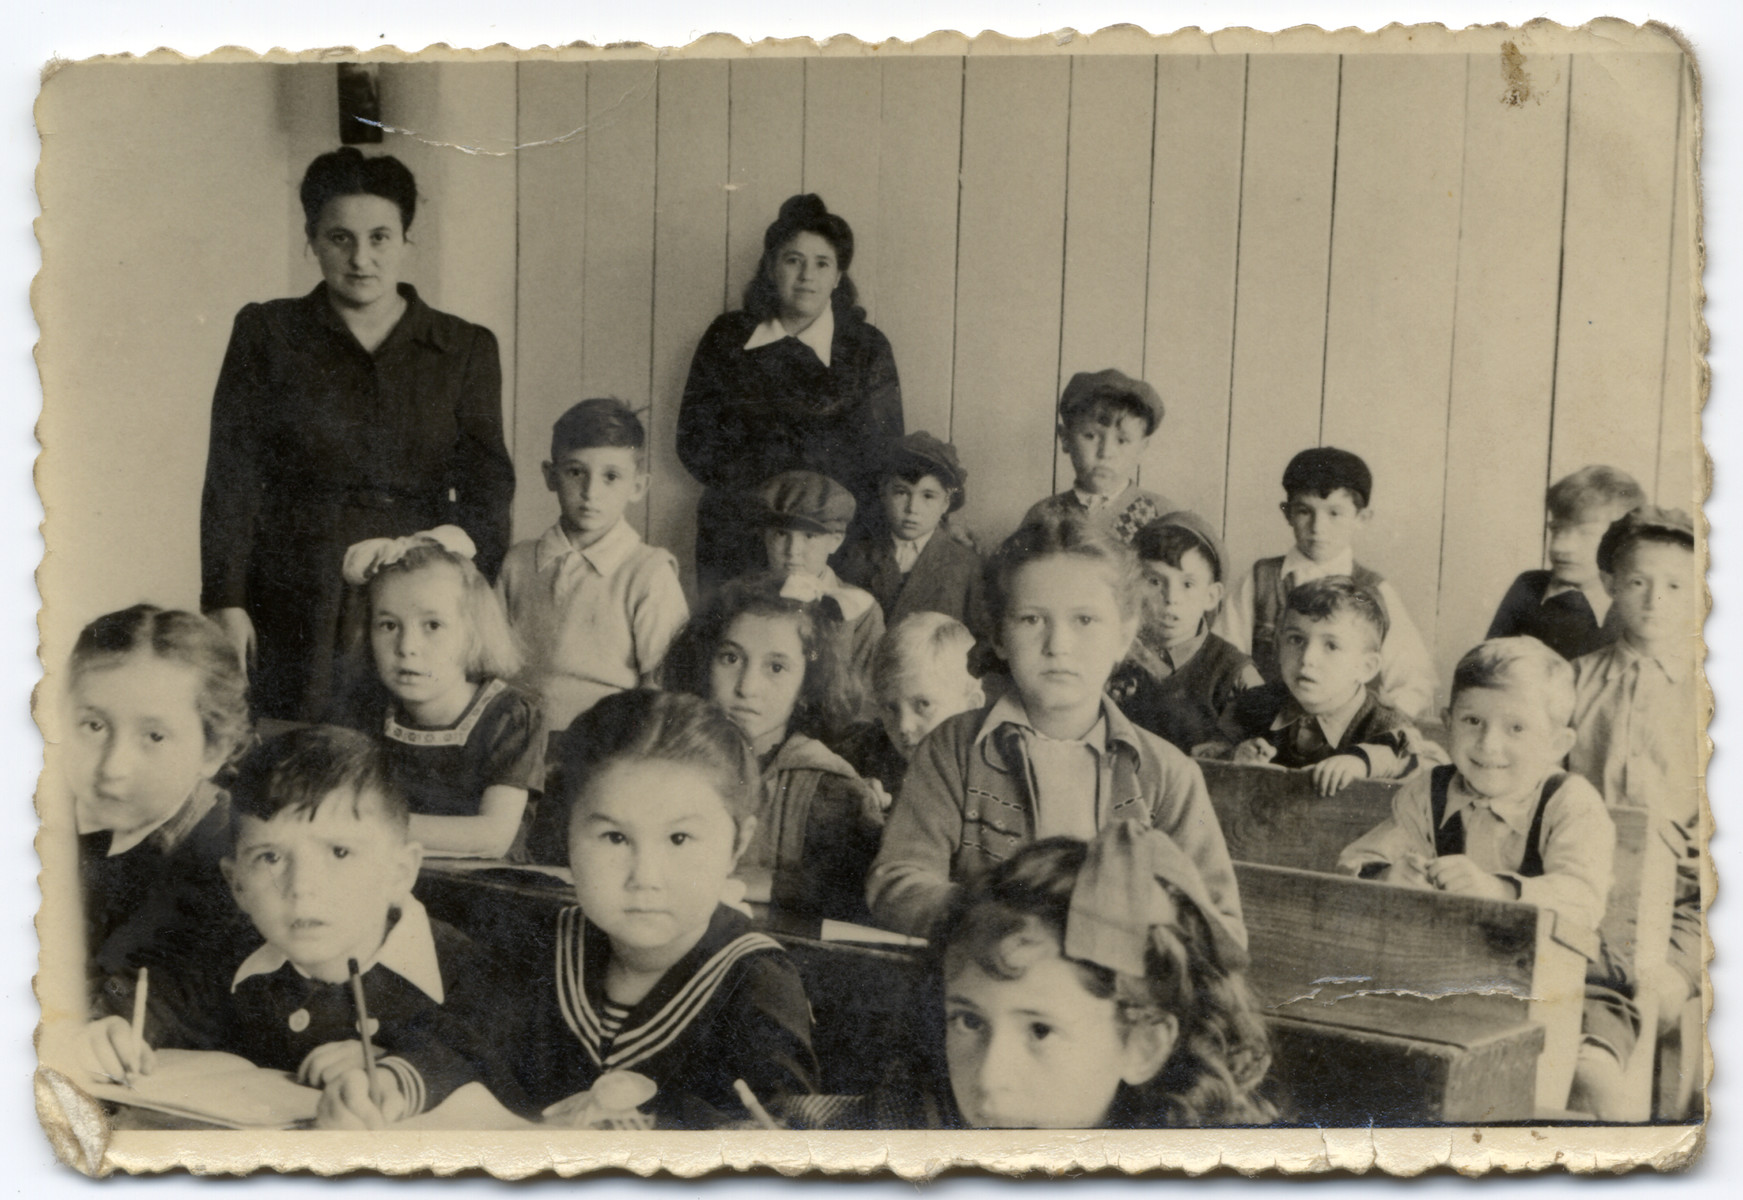 Young children study in a classroom in an elementary school in the Wels displaced persons' camp.  Fred (Efraim Yitzhak) Feldman is pictured (3rd row far right).